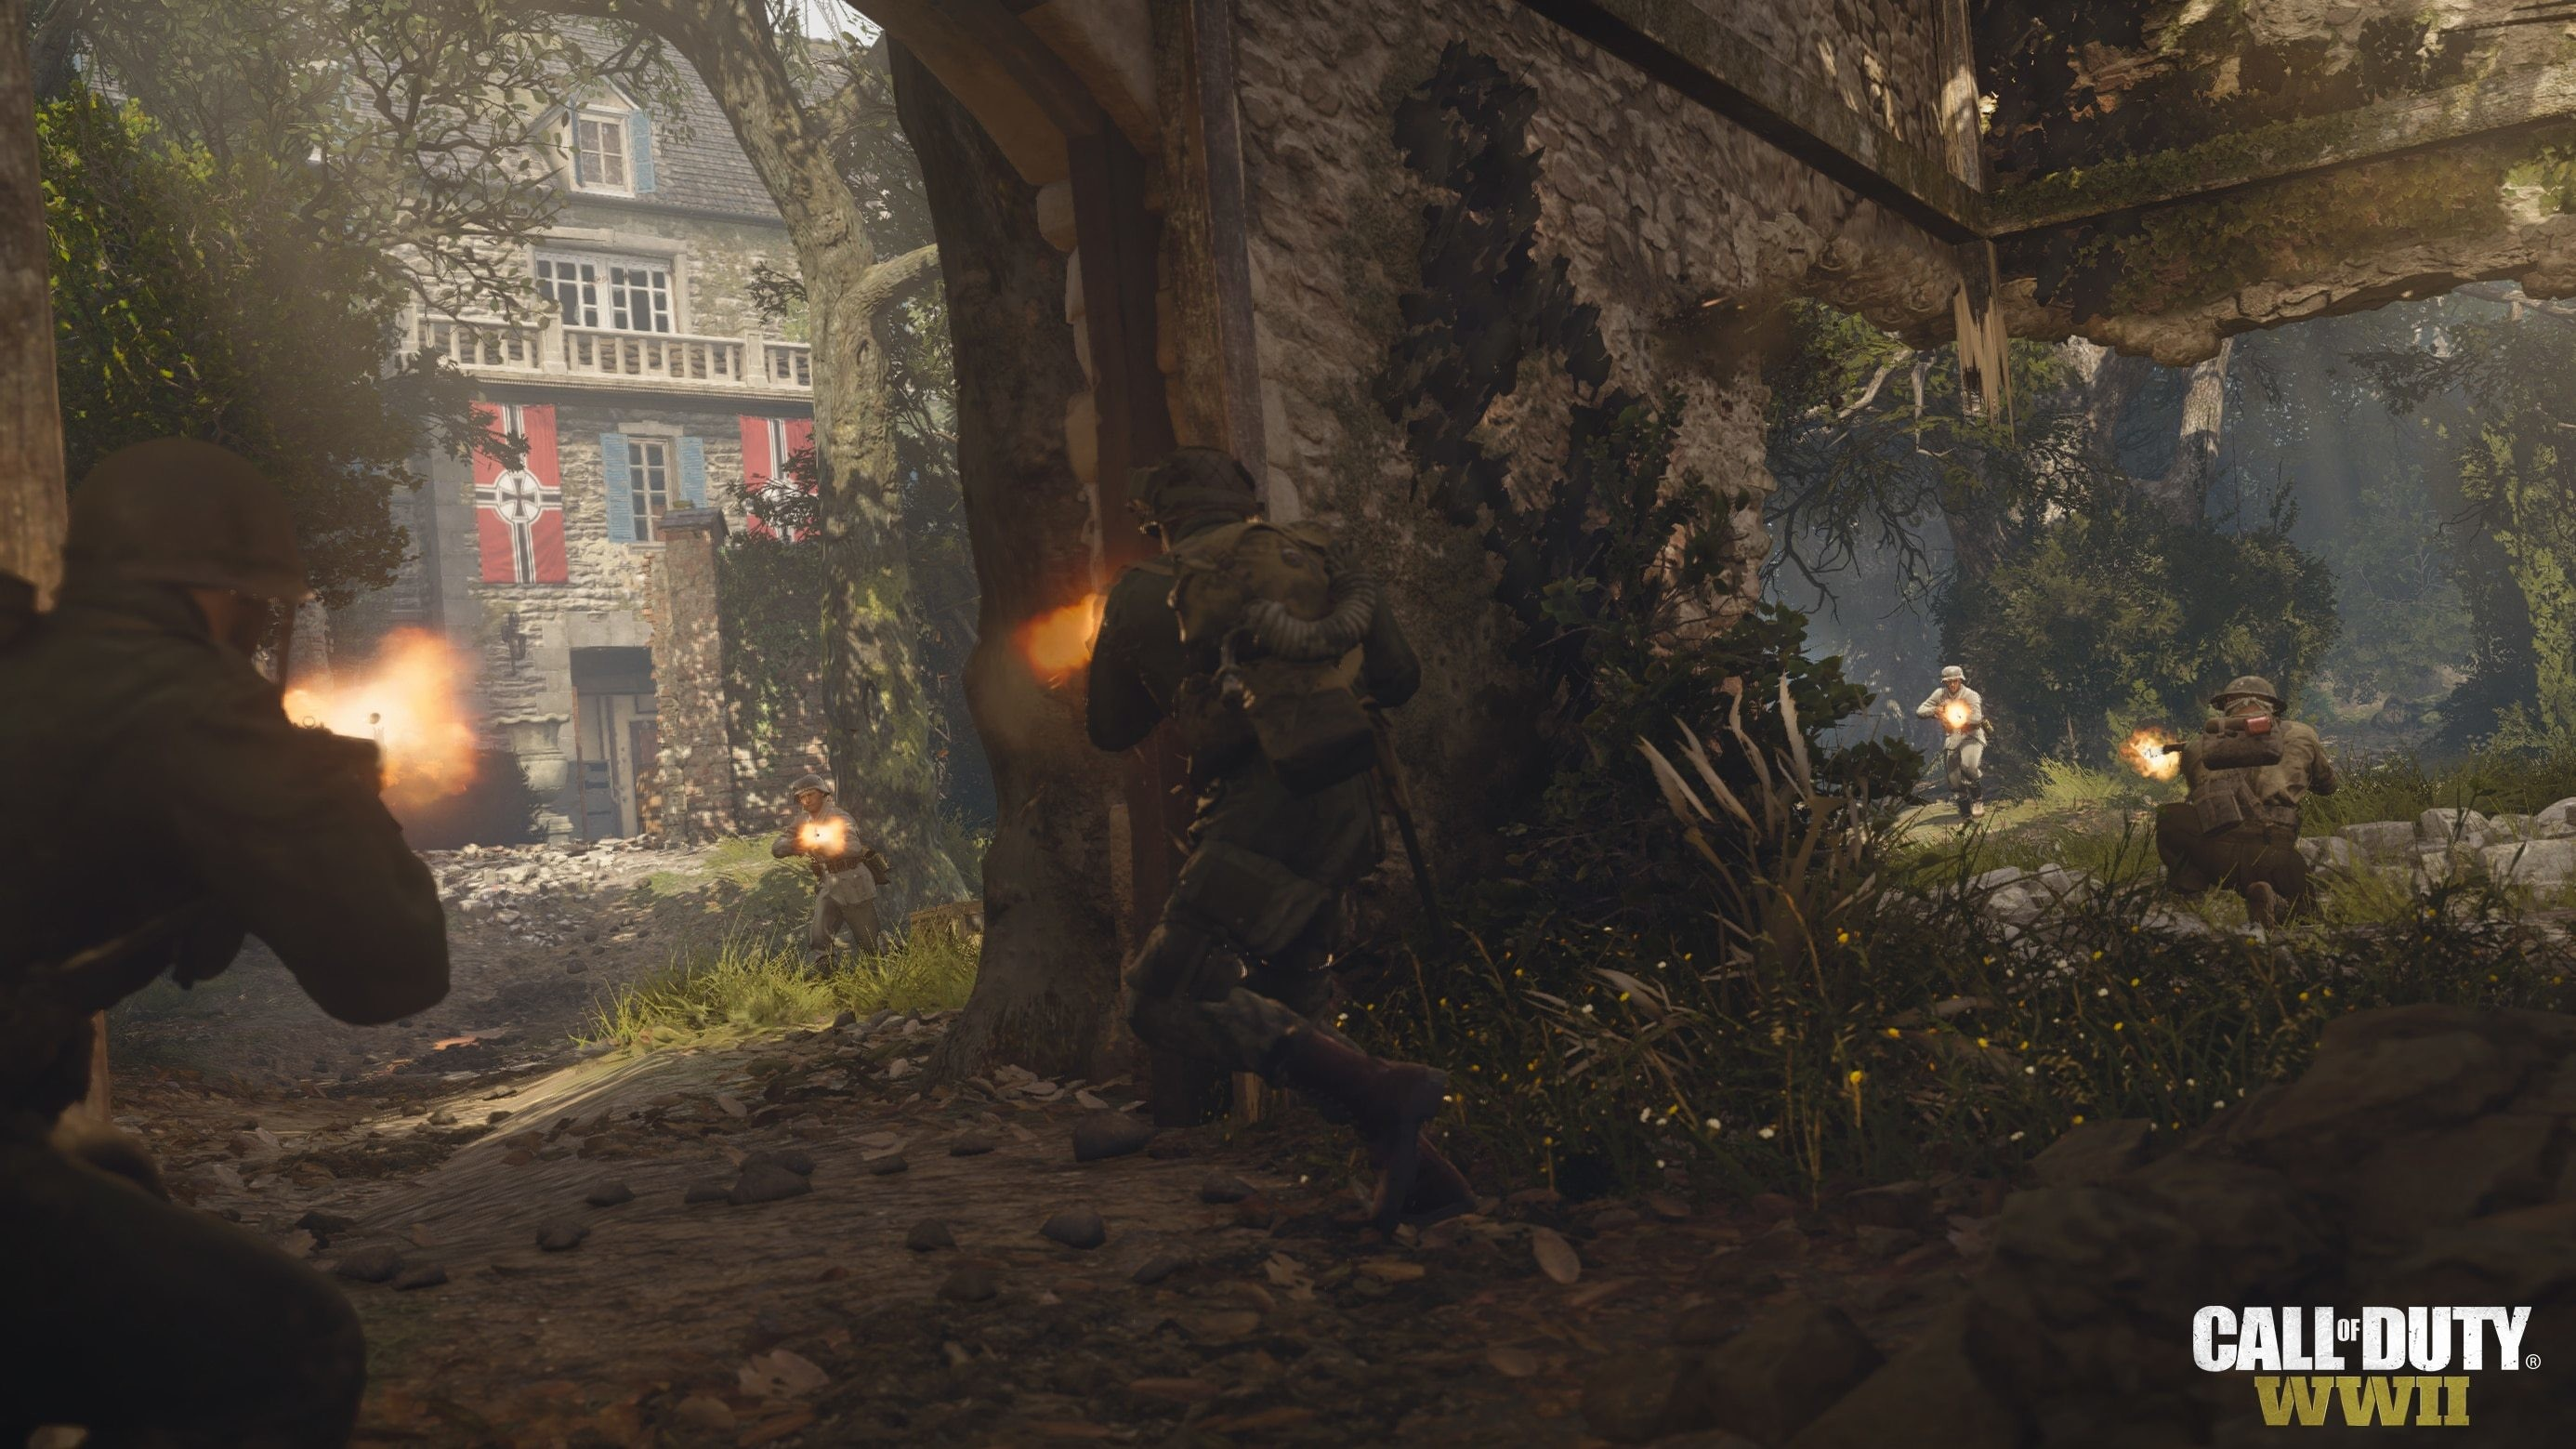 In it you will see the different maps, characters, atmosphere and much  more. Let me know what you think of the Call of Duty WW2 Screenshots below: